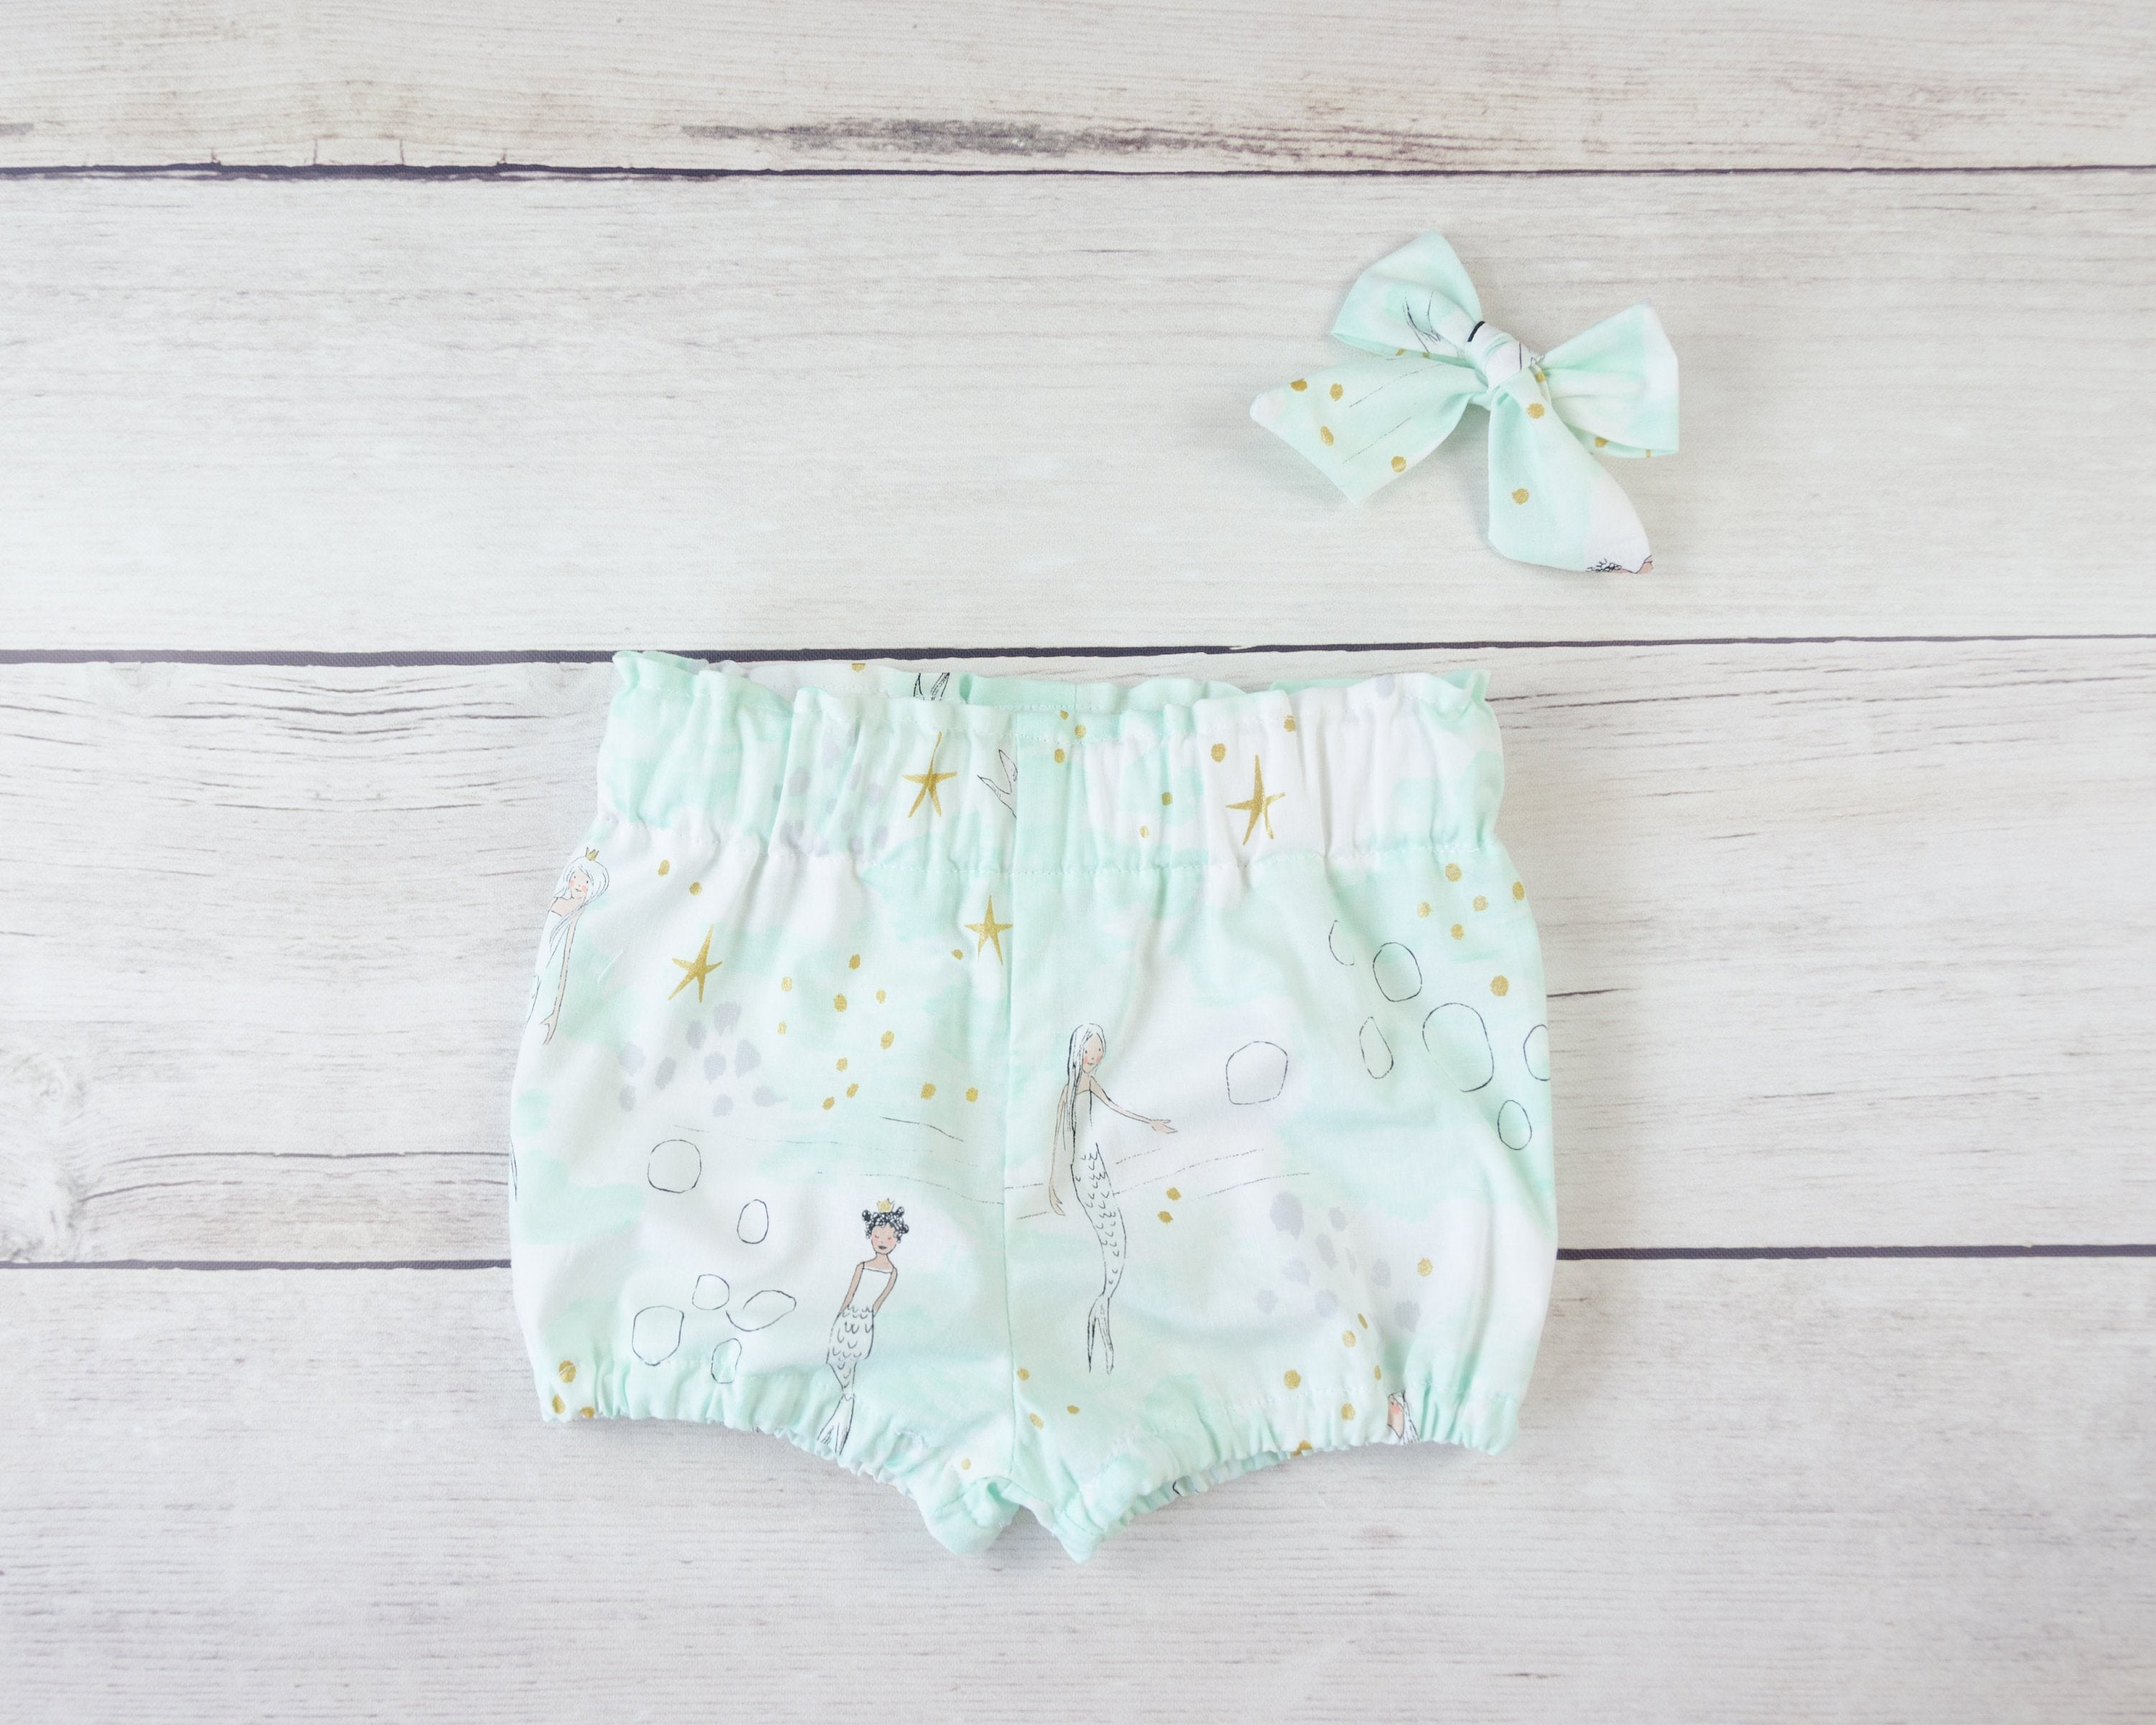 Minty Mermaid Baby Toddler Bloomers or Skirt